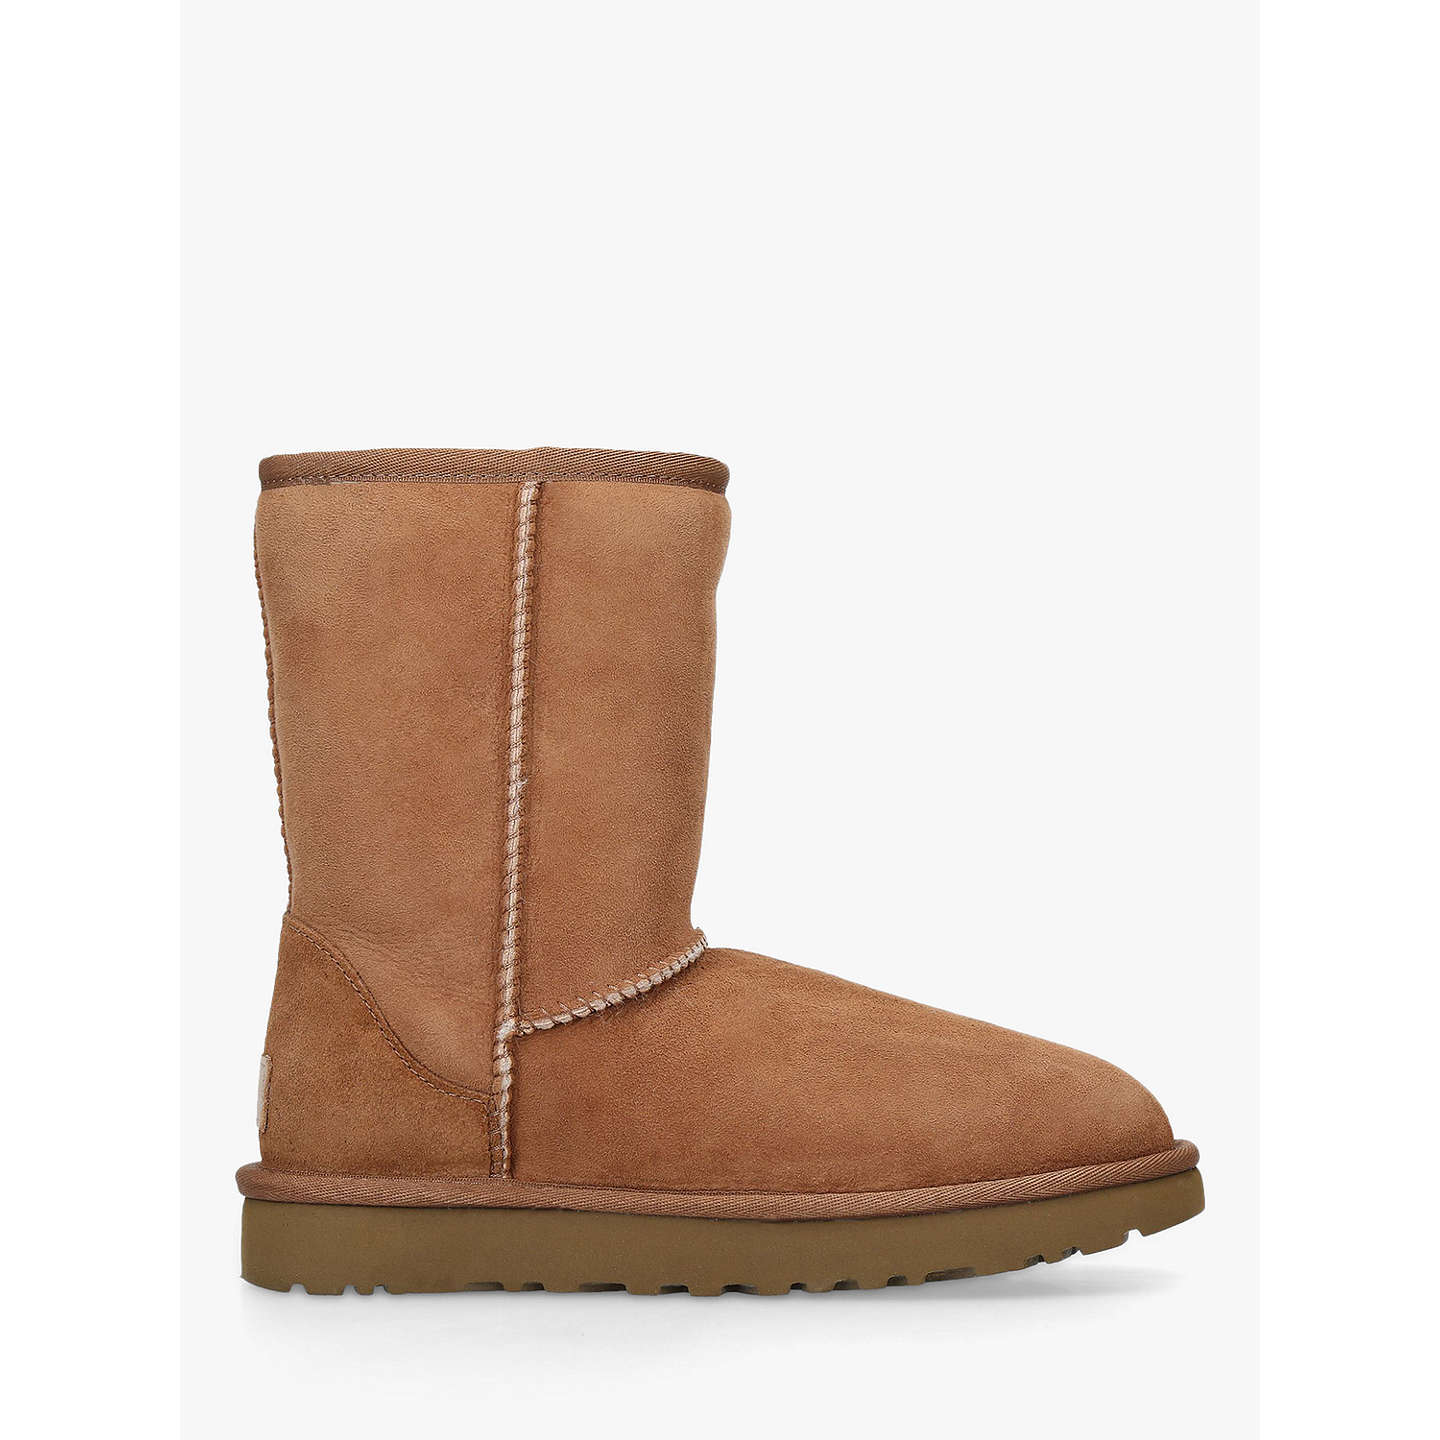 BuyUGG Classic II Short Sheepskin Ankle Boots, Chestnut, 6 Online at  johnlewis.com ...